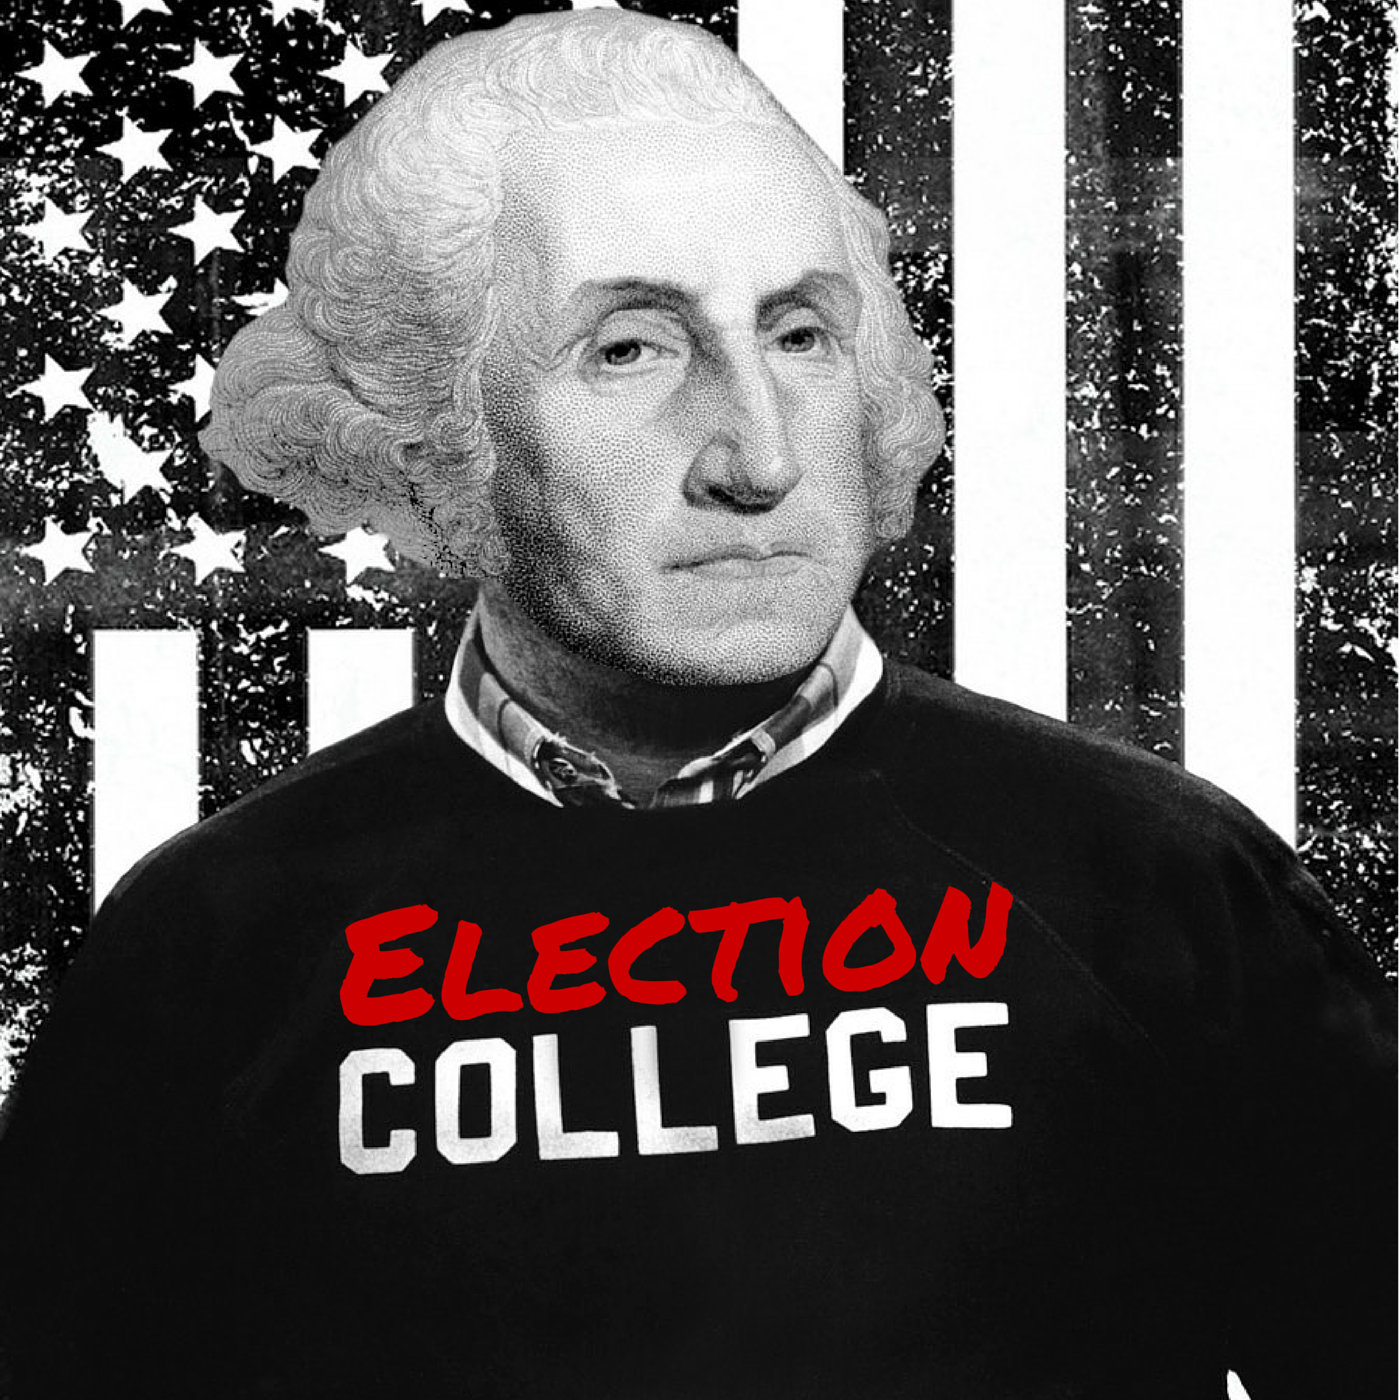 Abigail Adams | Episode #211 | Election College: United States Presidential Election History